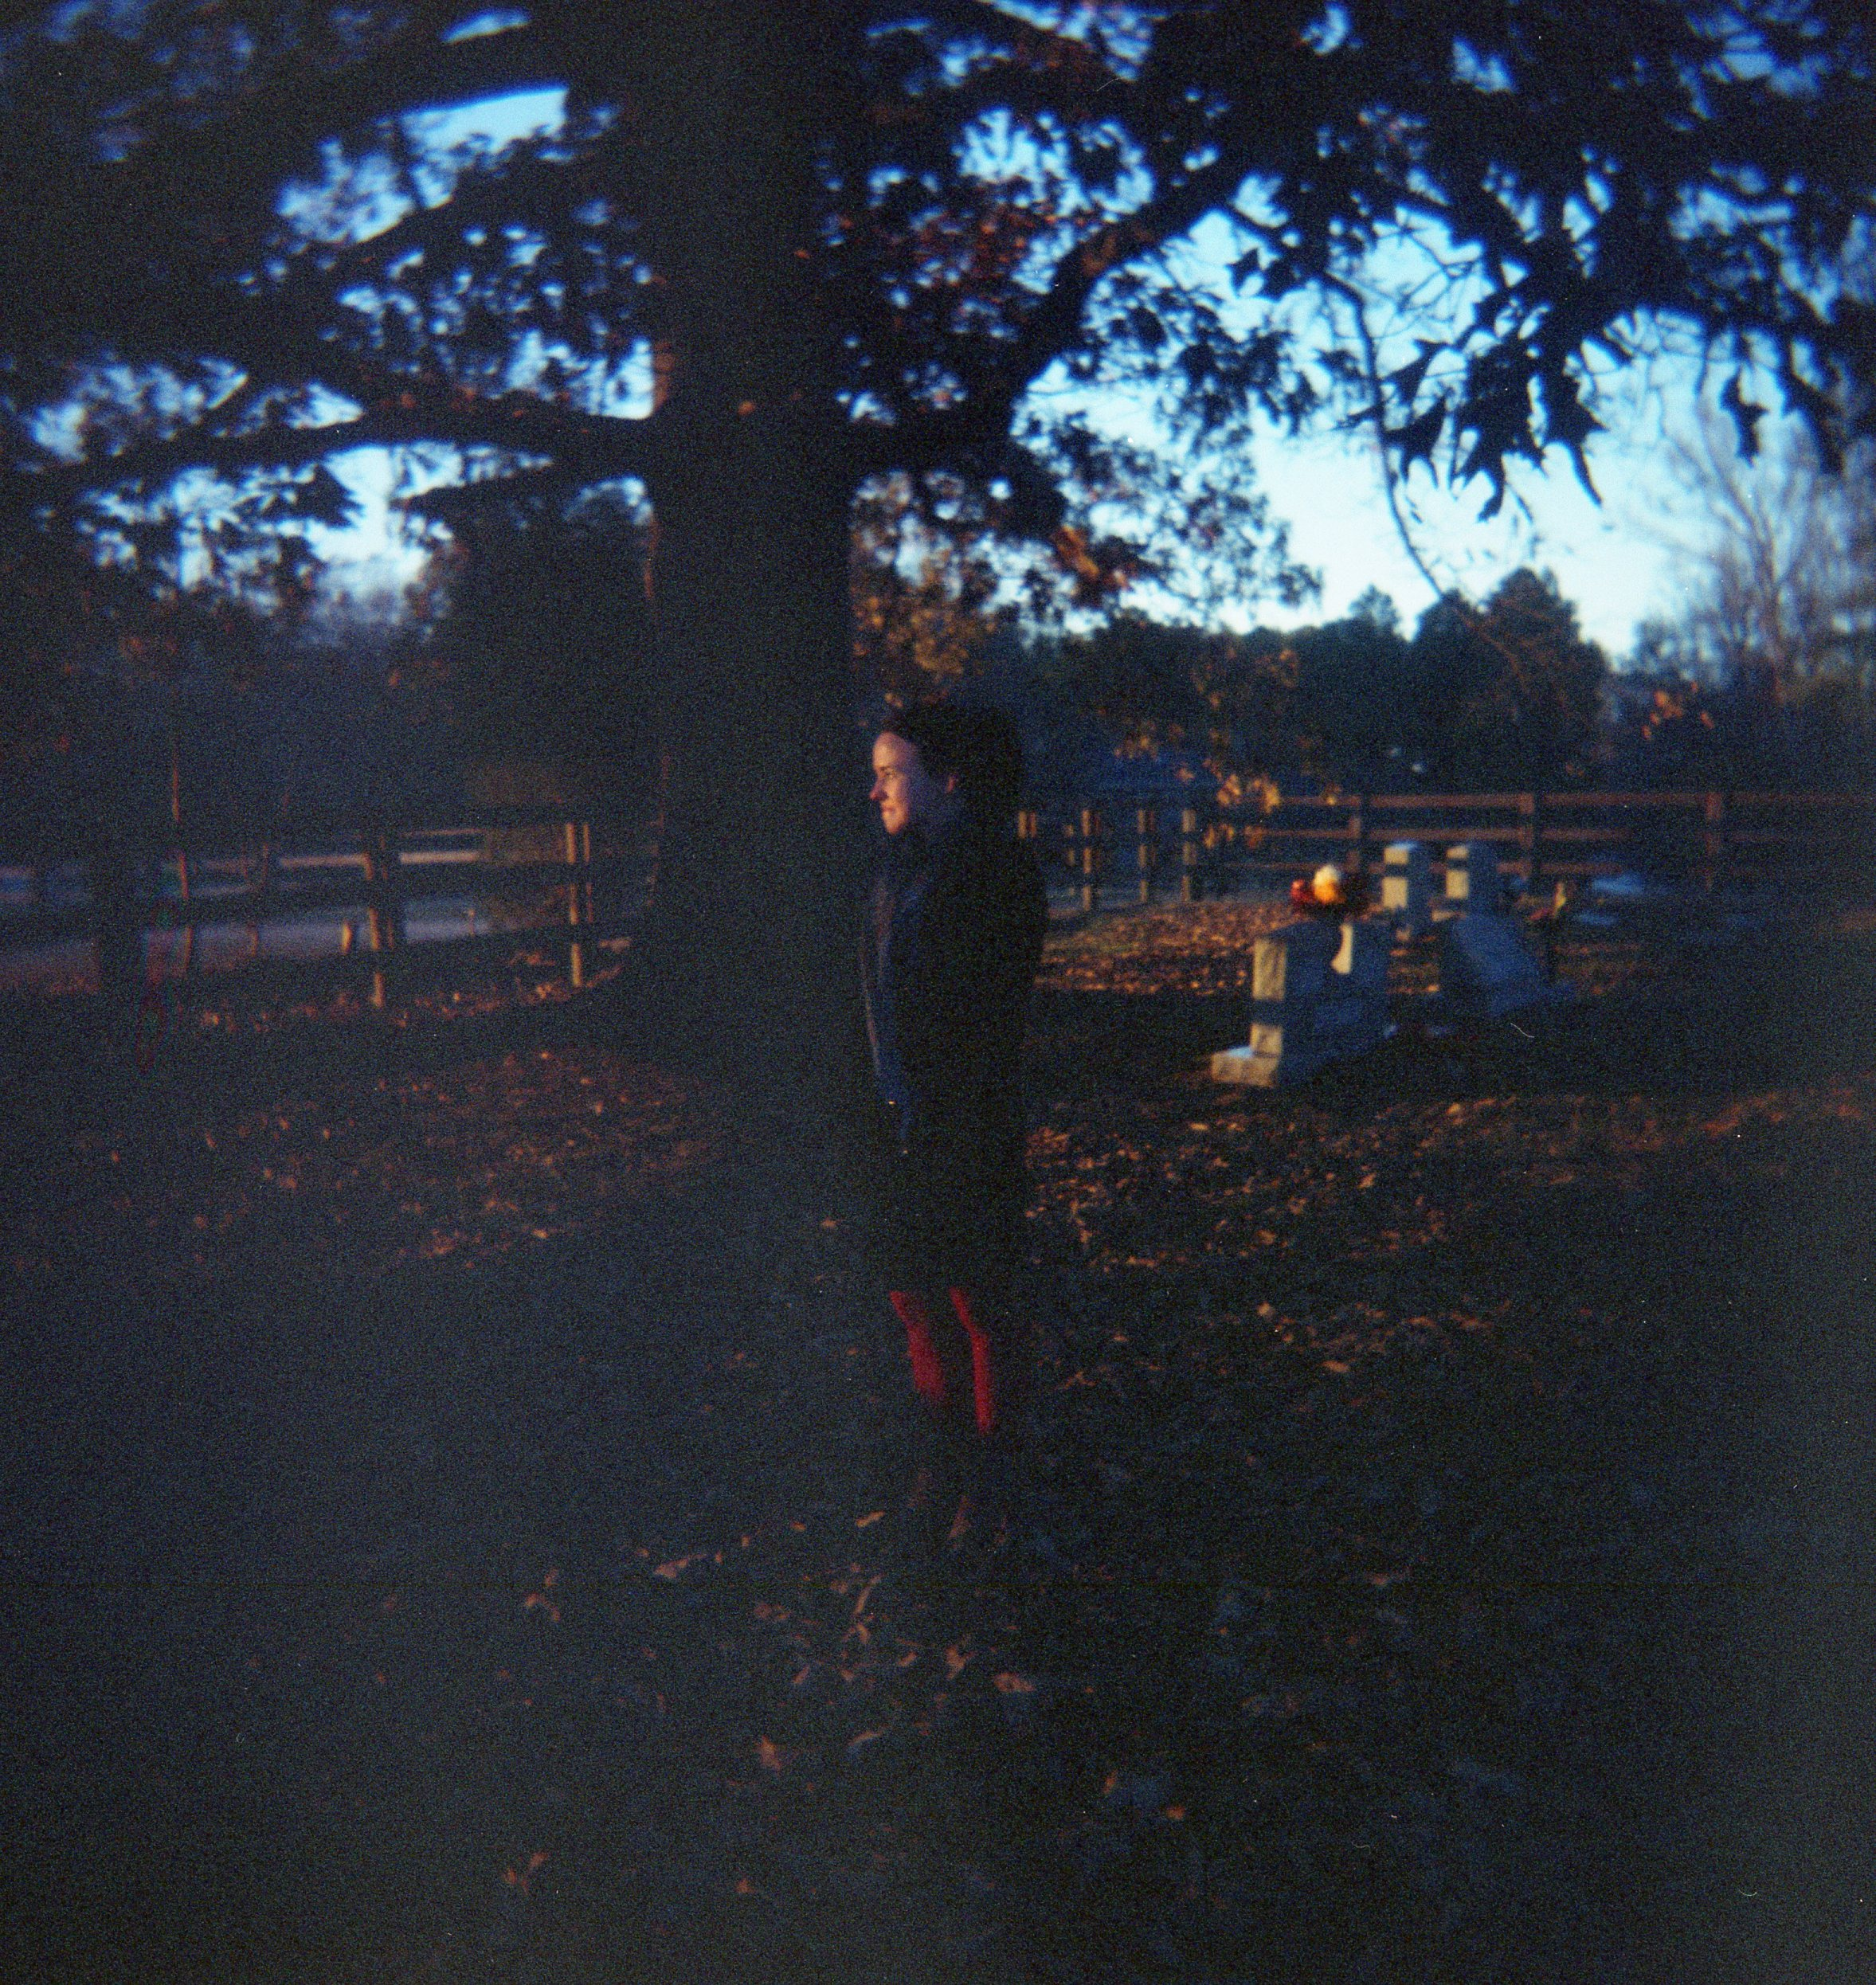 Kate, Carrboro, NC. 2008 or 2009?